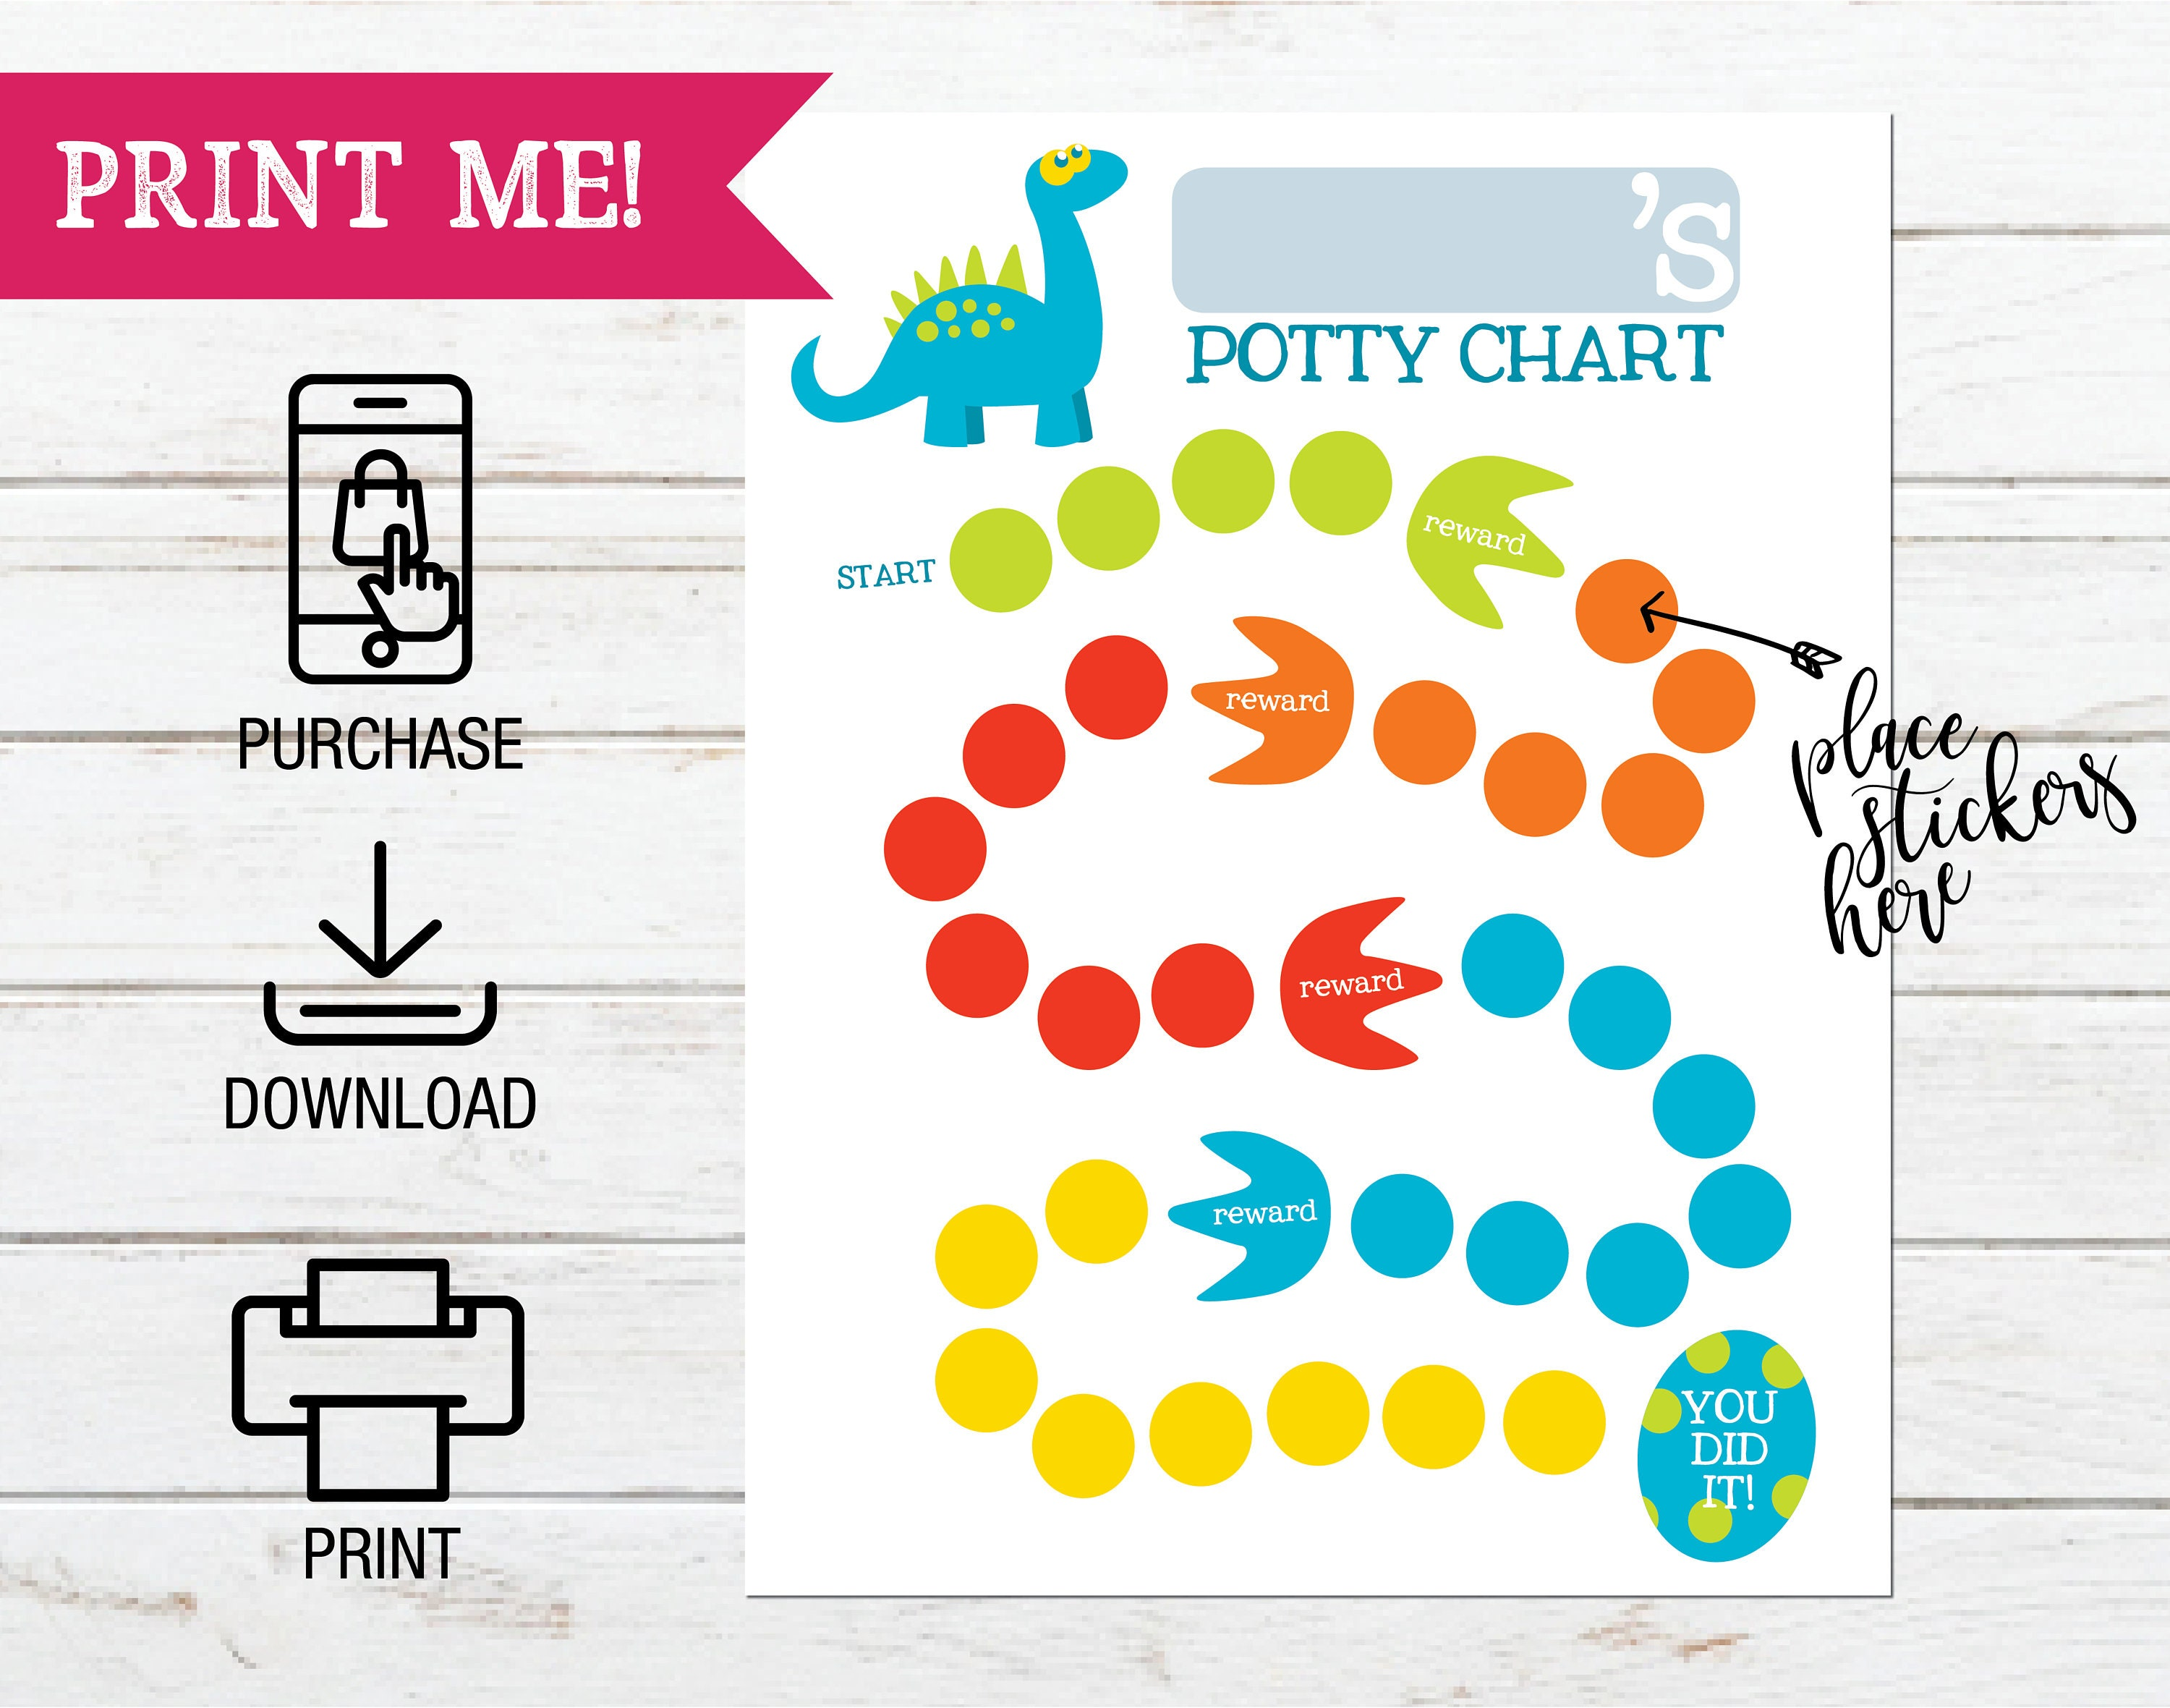 photo relating to Printable Sticker Chart named Printable Dinosaur Topic Potty Doing exercises Chart, Printable Sticker Chart, Gain Chart for Preschooler, Potty Working out Sticker